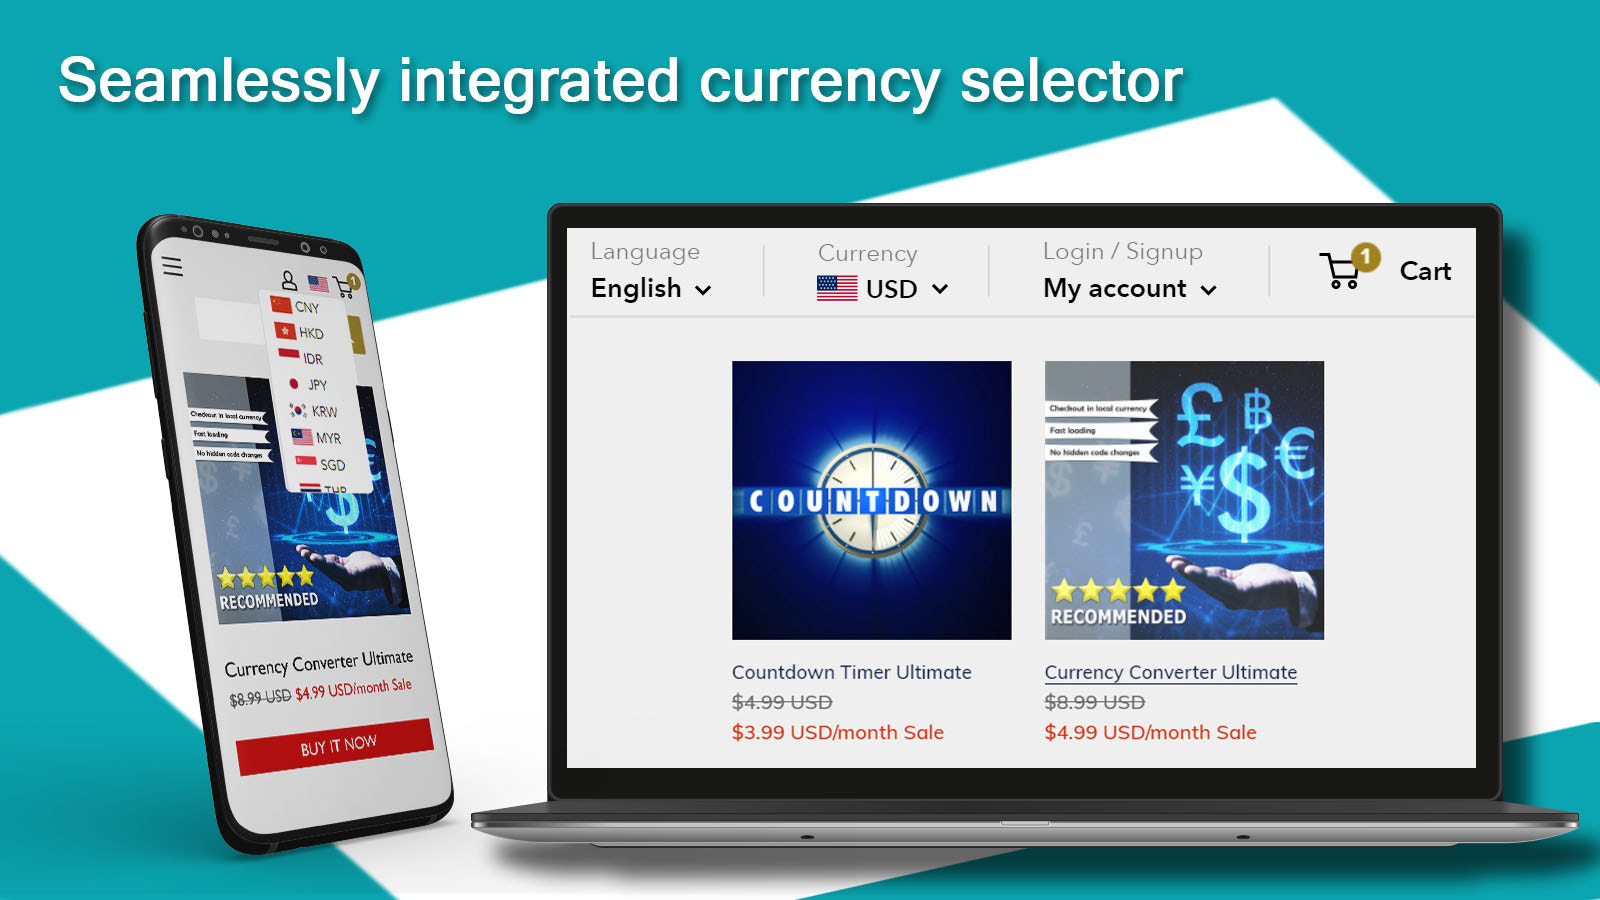 Integrated currency selector designs in currency converter